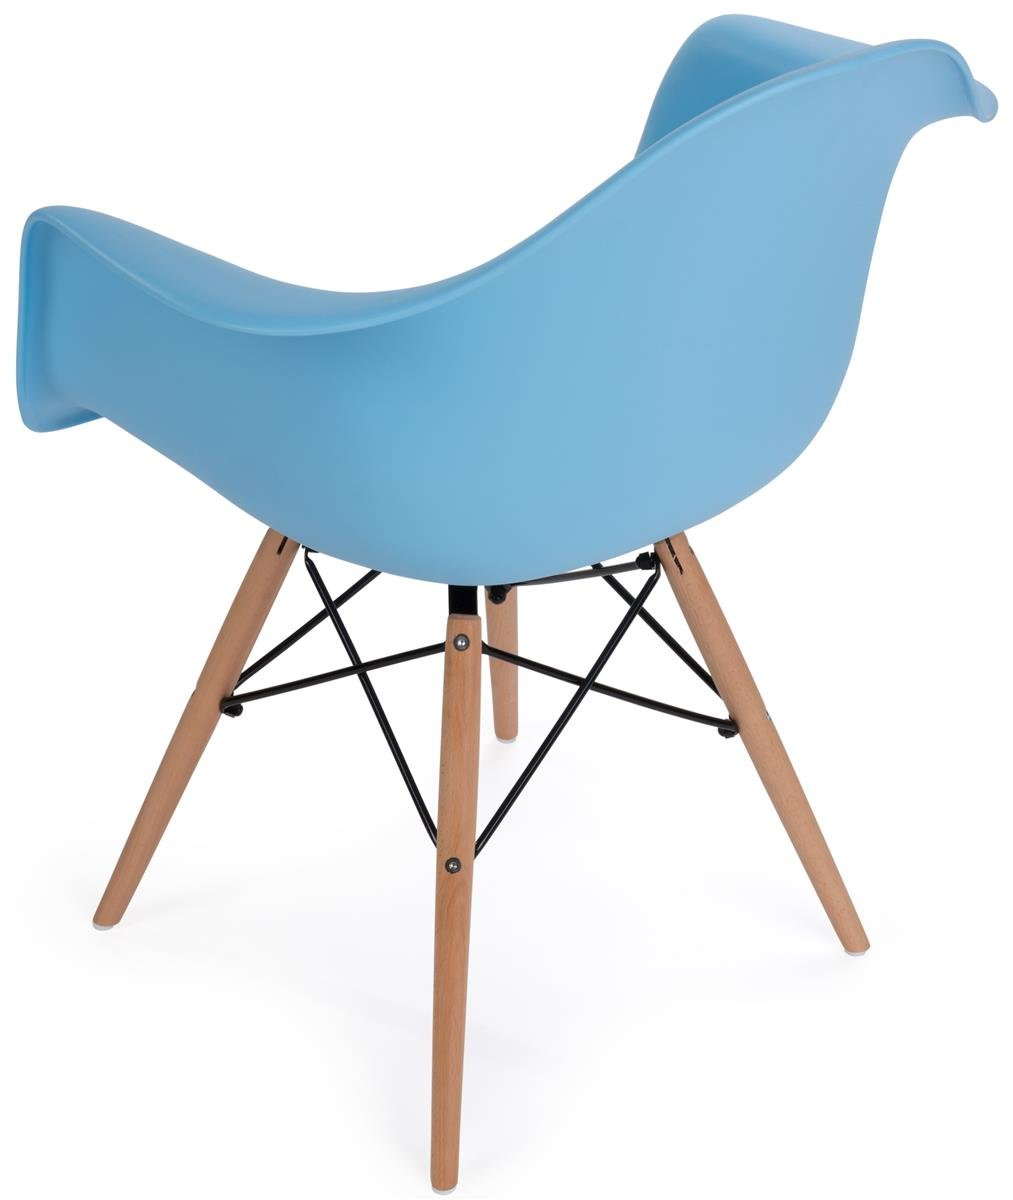 Displays2go, Scoop Plastic Eames-Style Chair, Metal, Plastic, and Wood Construction – Blue Finish, Light Wood Base (FDC32WDABU) by Displays2go (Image #2)